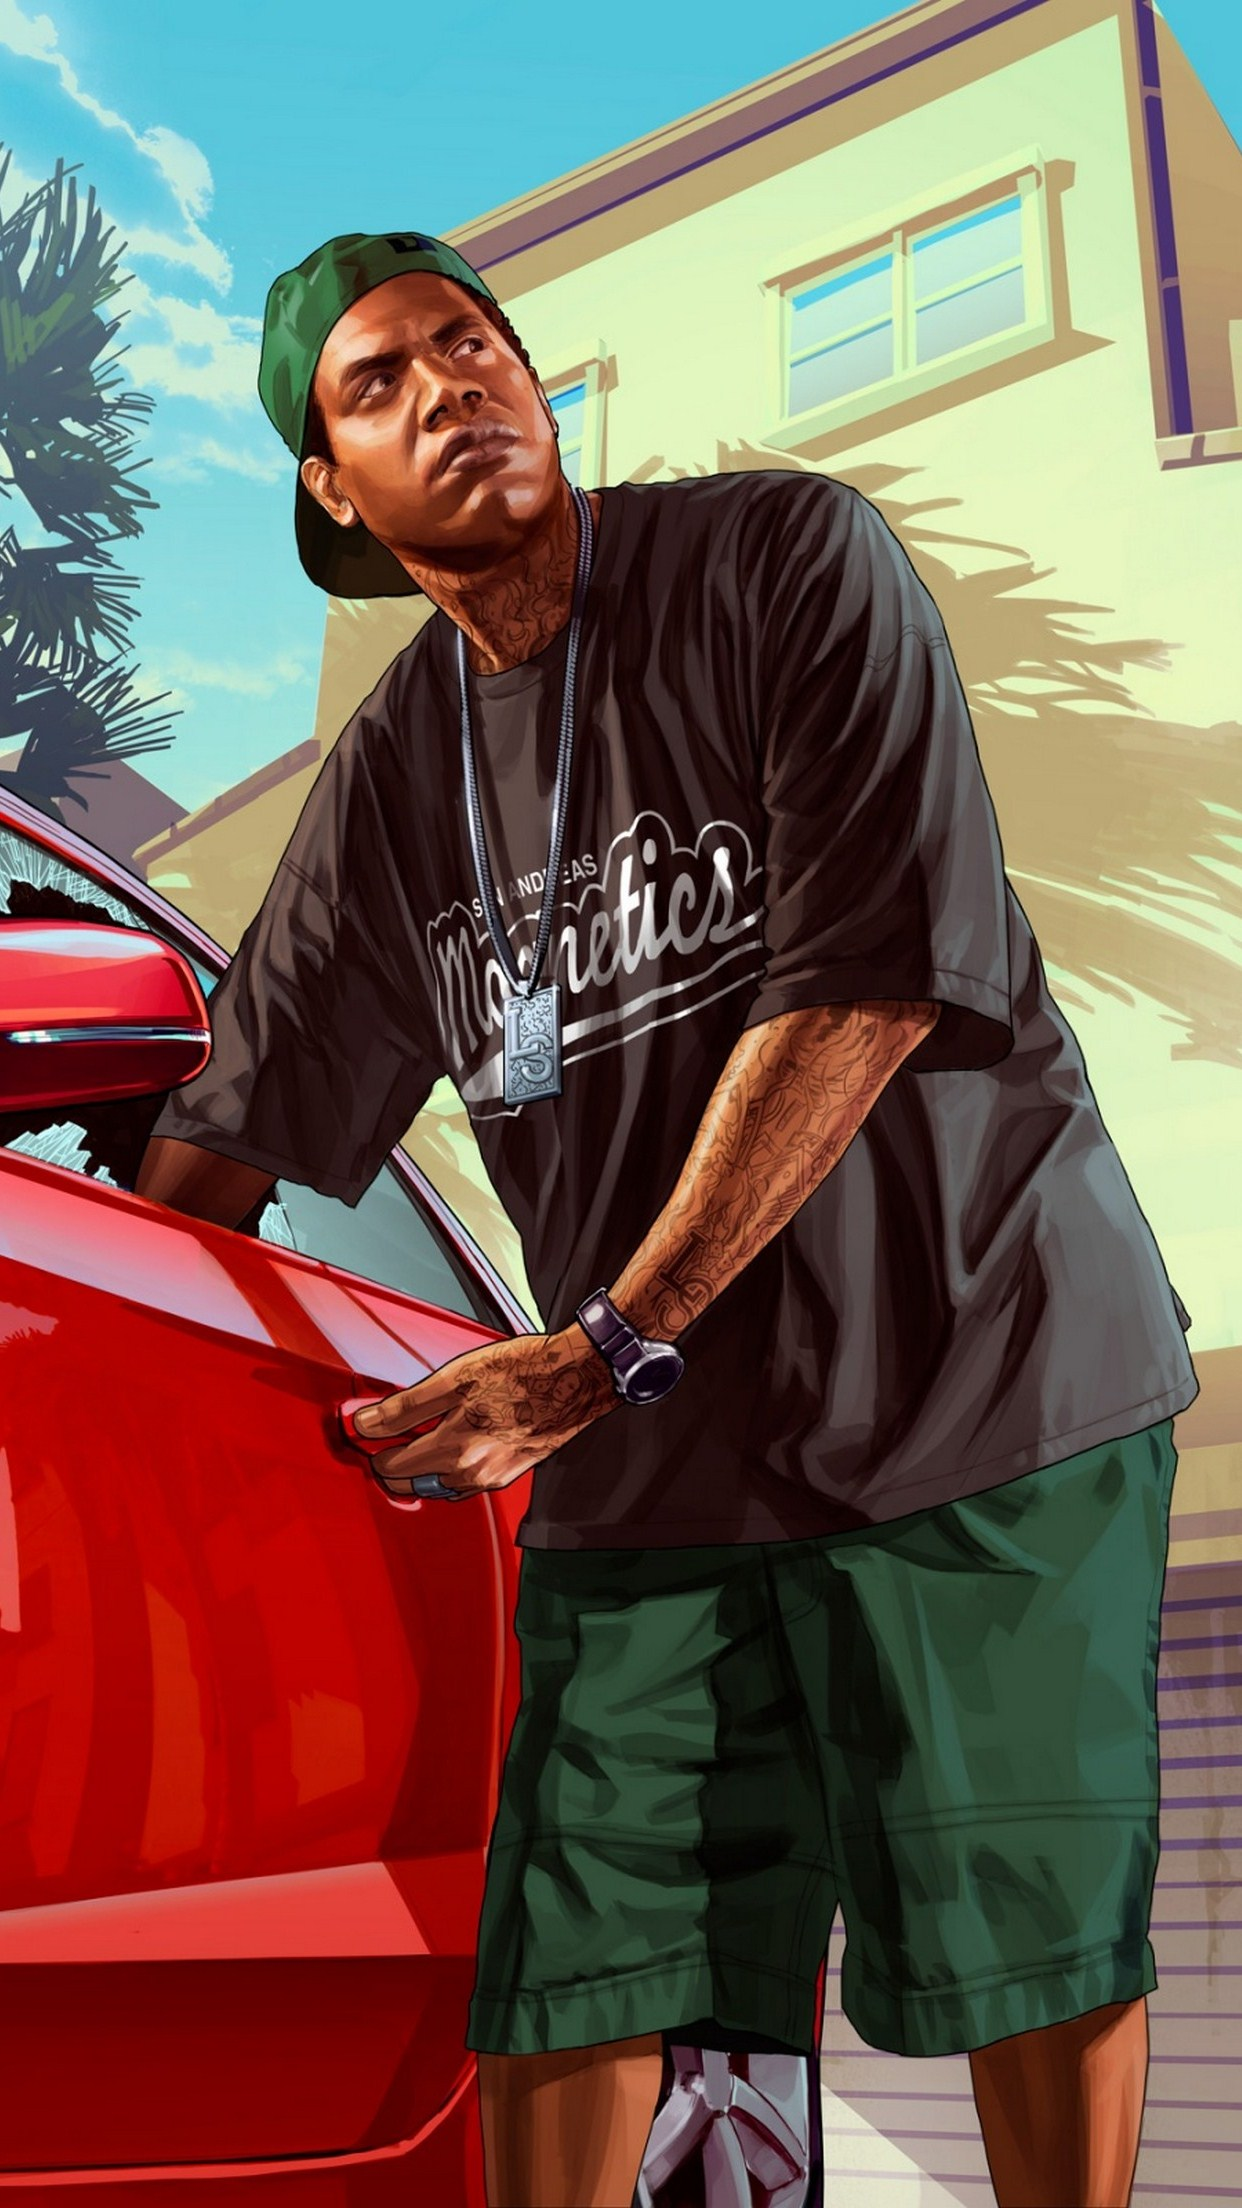 gtav man 3Wallpapers iPhone Parallax.jpg GTA V Man